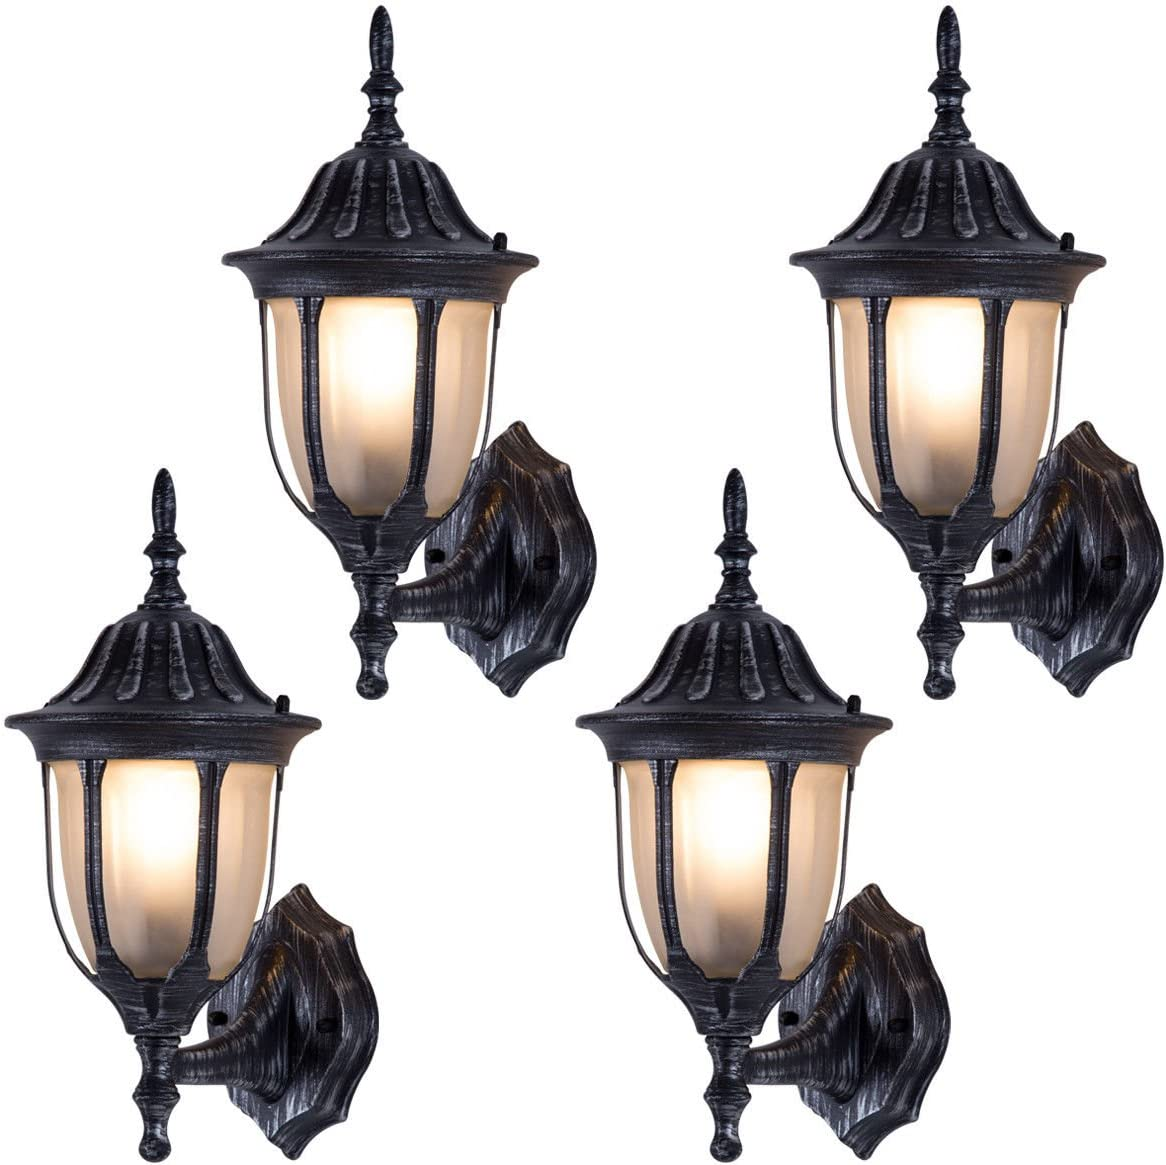 Tangkula Outdoor Lights Fixtures 4 Pack Outdoor Porch Front Door Garage Balcony Weatherproof Wall Sconces Lantern Lighting Exterior Light Fixtures Rust Traditional Amazon Com